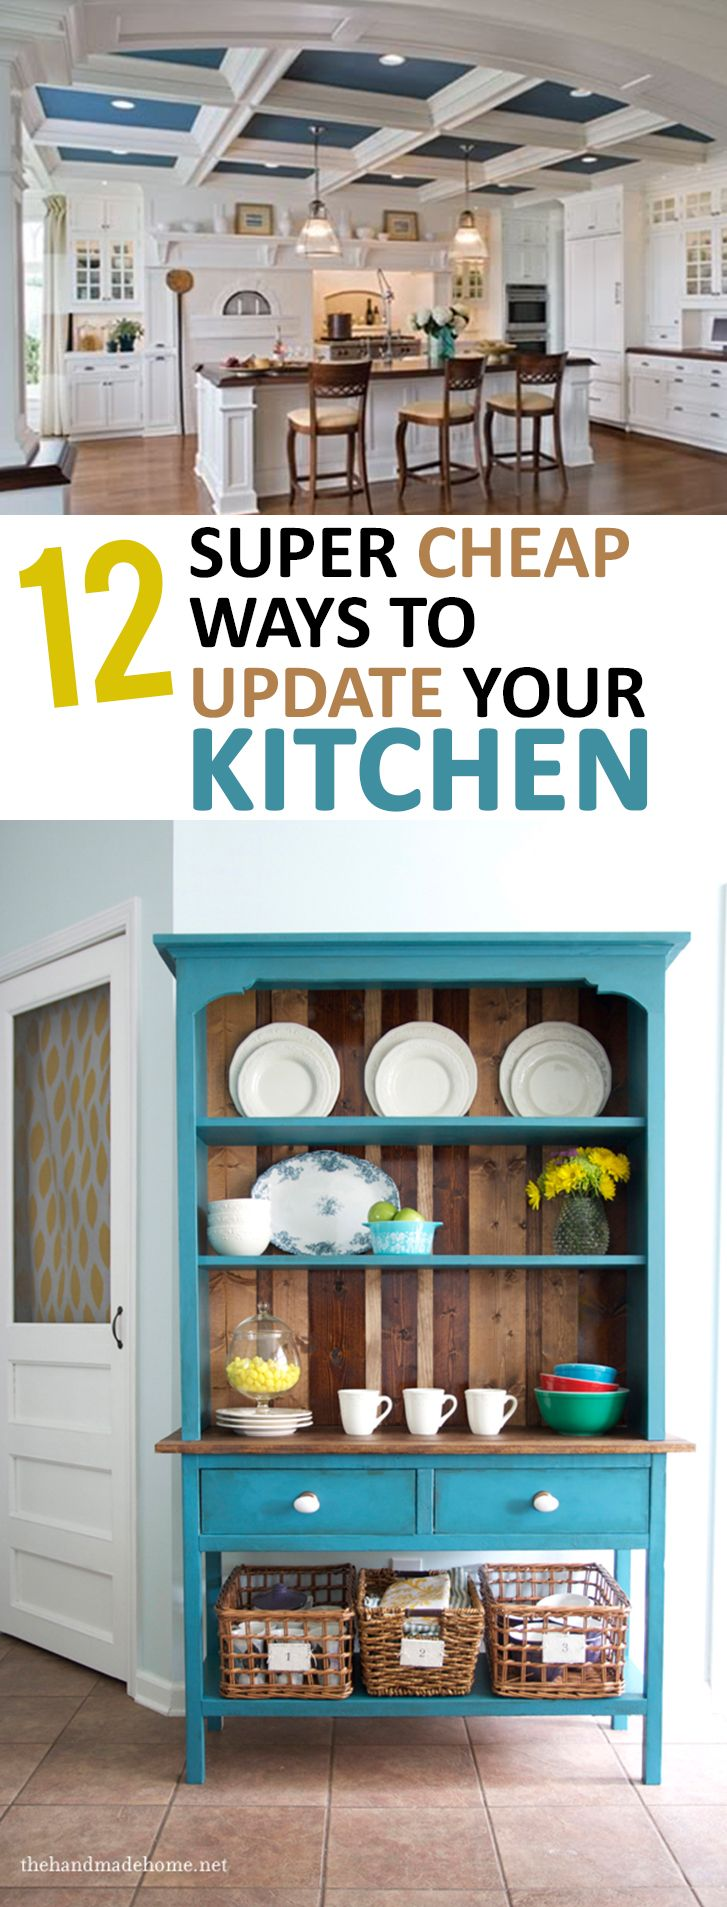 lovely Cheapest Way To Remodel Kitchen #8: 12 Ways to Update Your Kitchen